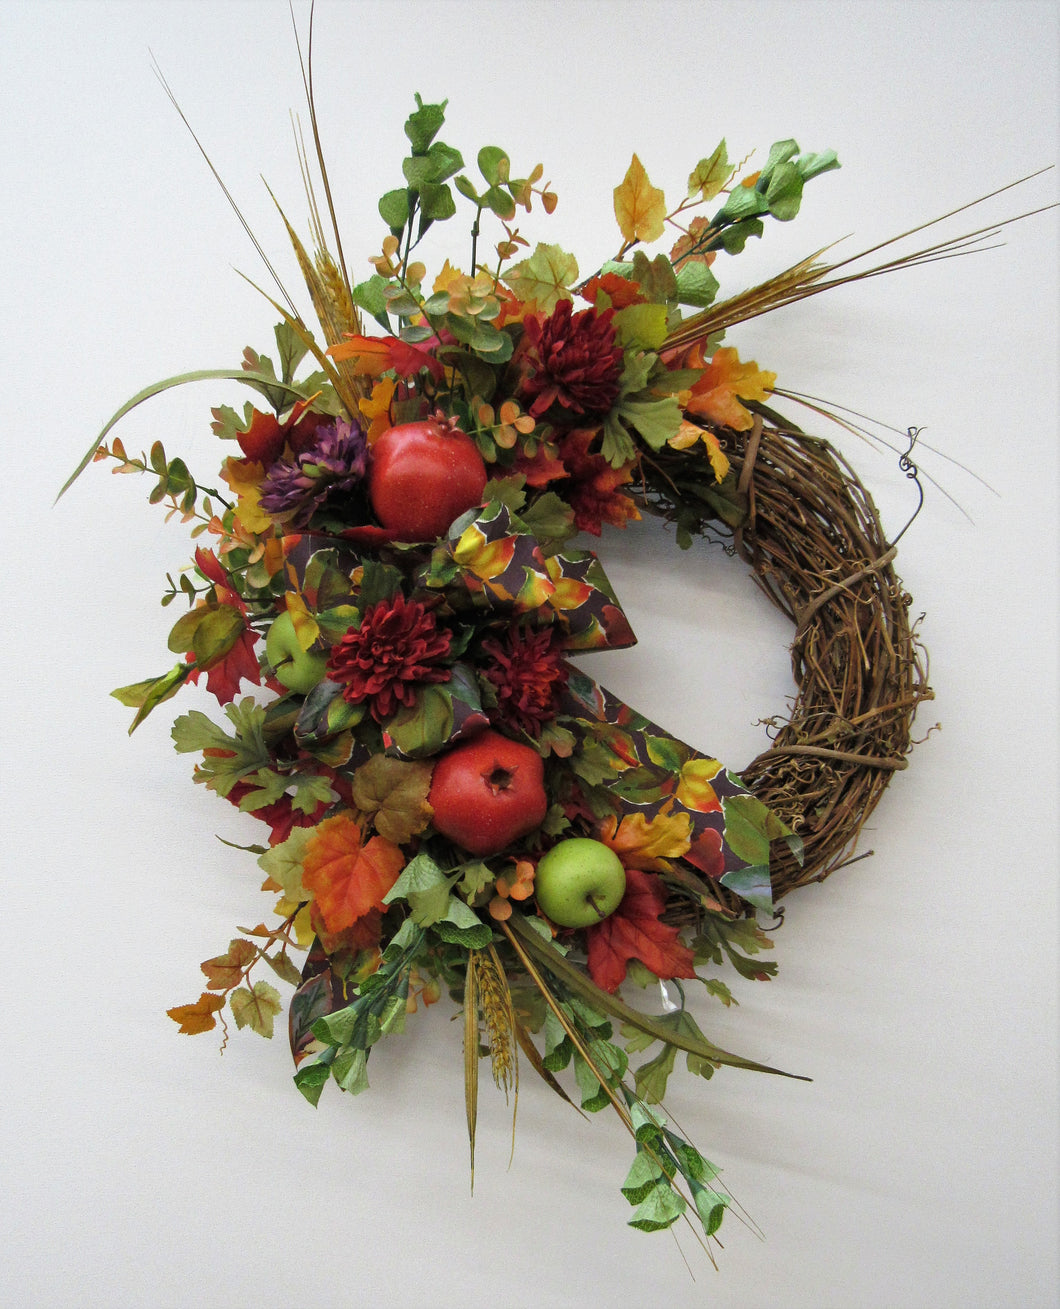 Gallery/Harv24 - April's Garden Wreath